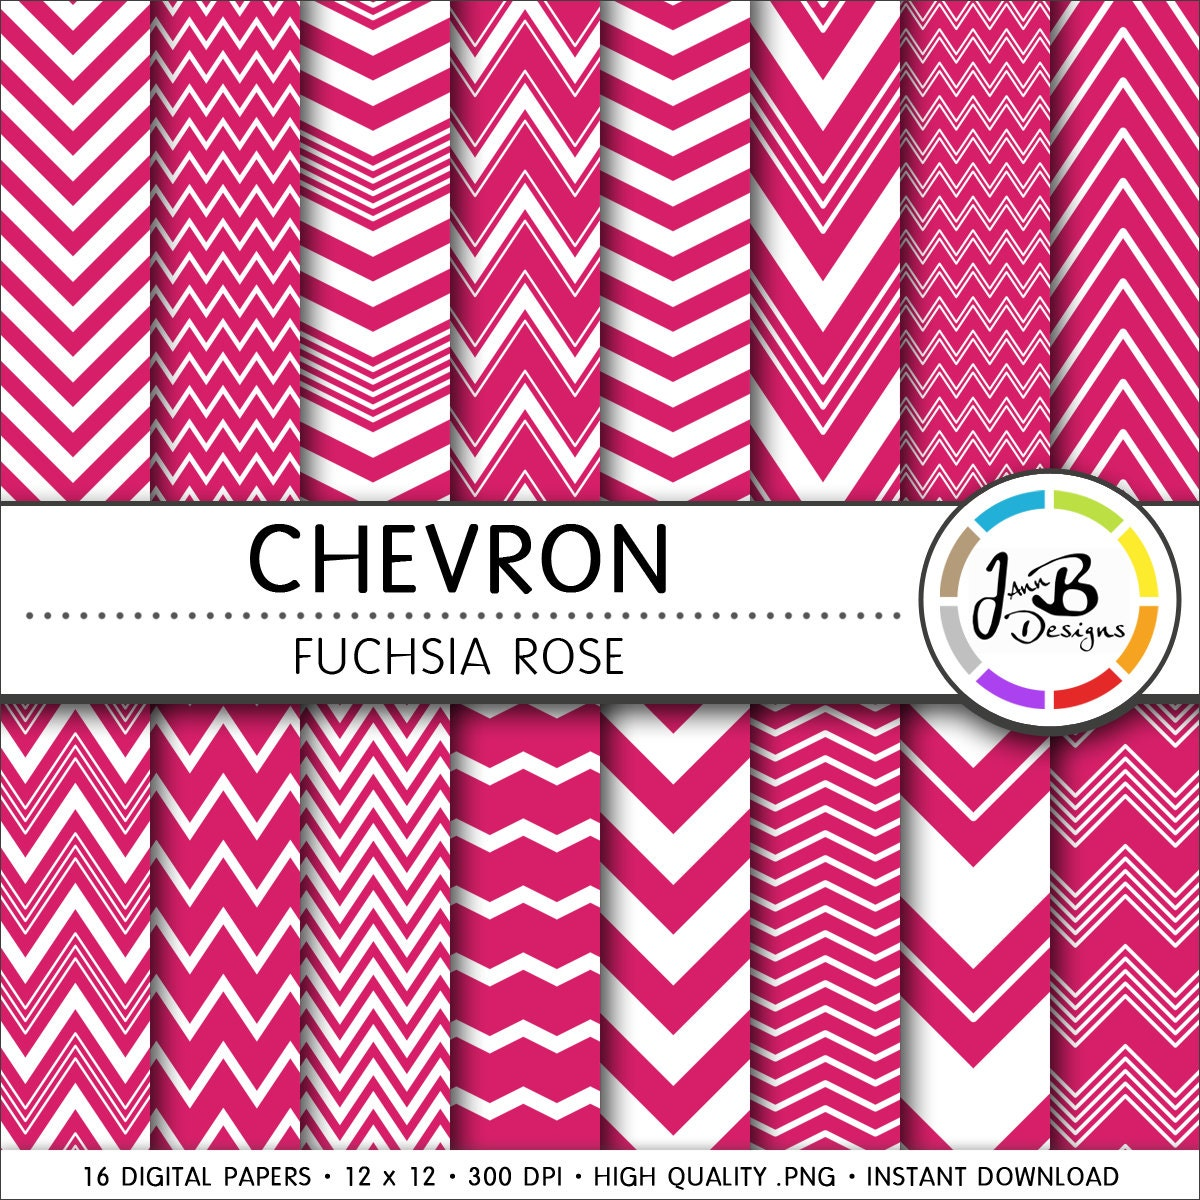 Papel Digital de Chevron rosa fucsia rosa blanco Chevron